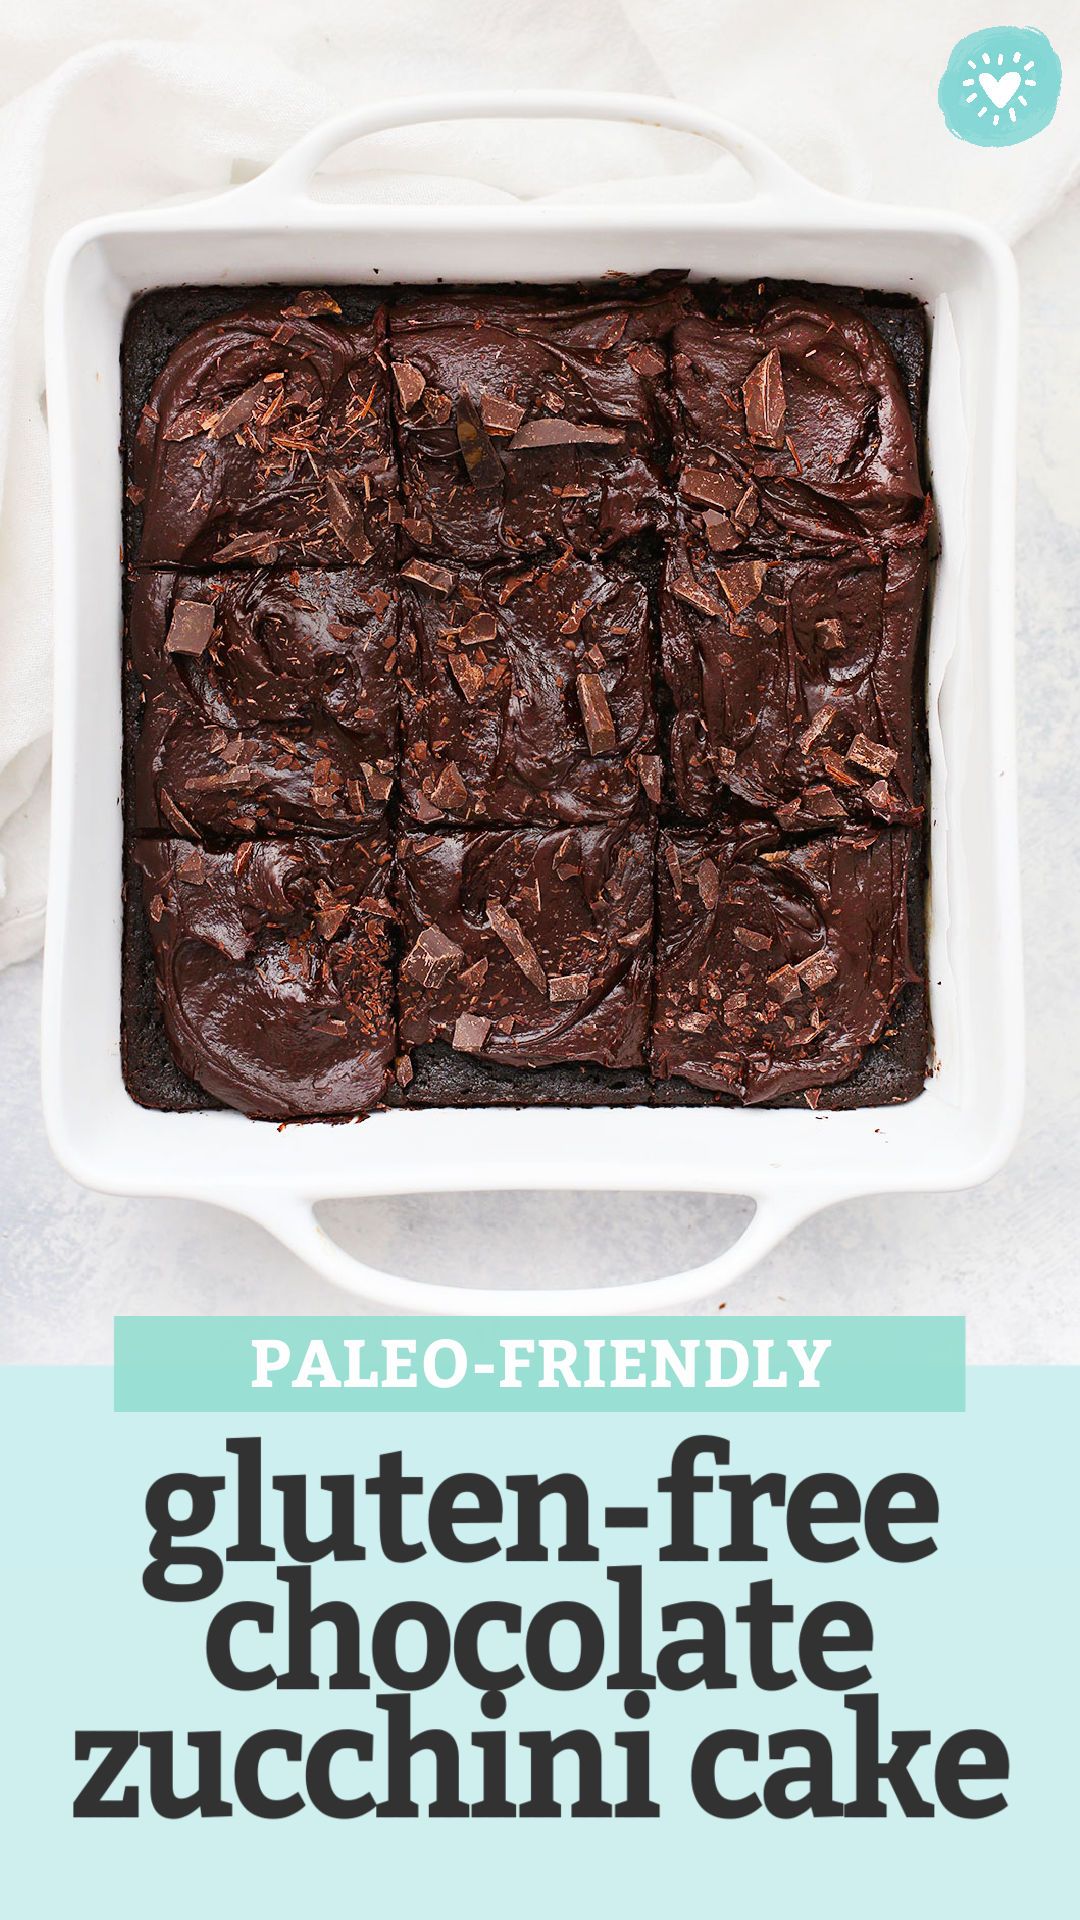 """Gluten Free Chocolate Zucchini Cake in a White 8x8 pan with text overlay that reads """"Paleo-Friendly Gluten-Free Chocolate Zucchini Cake"""""""